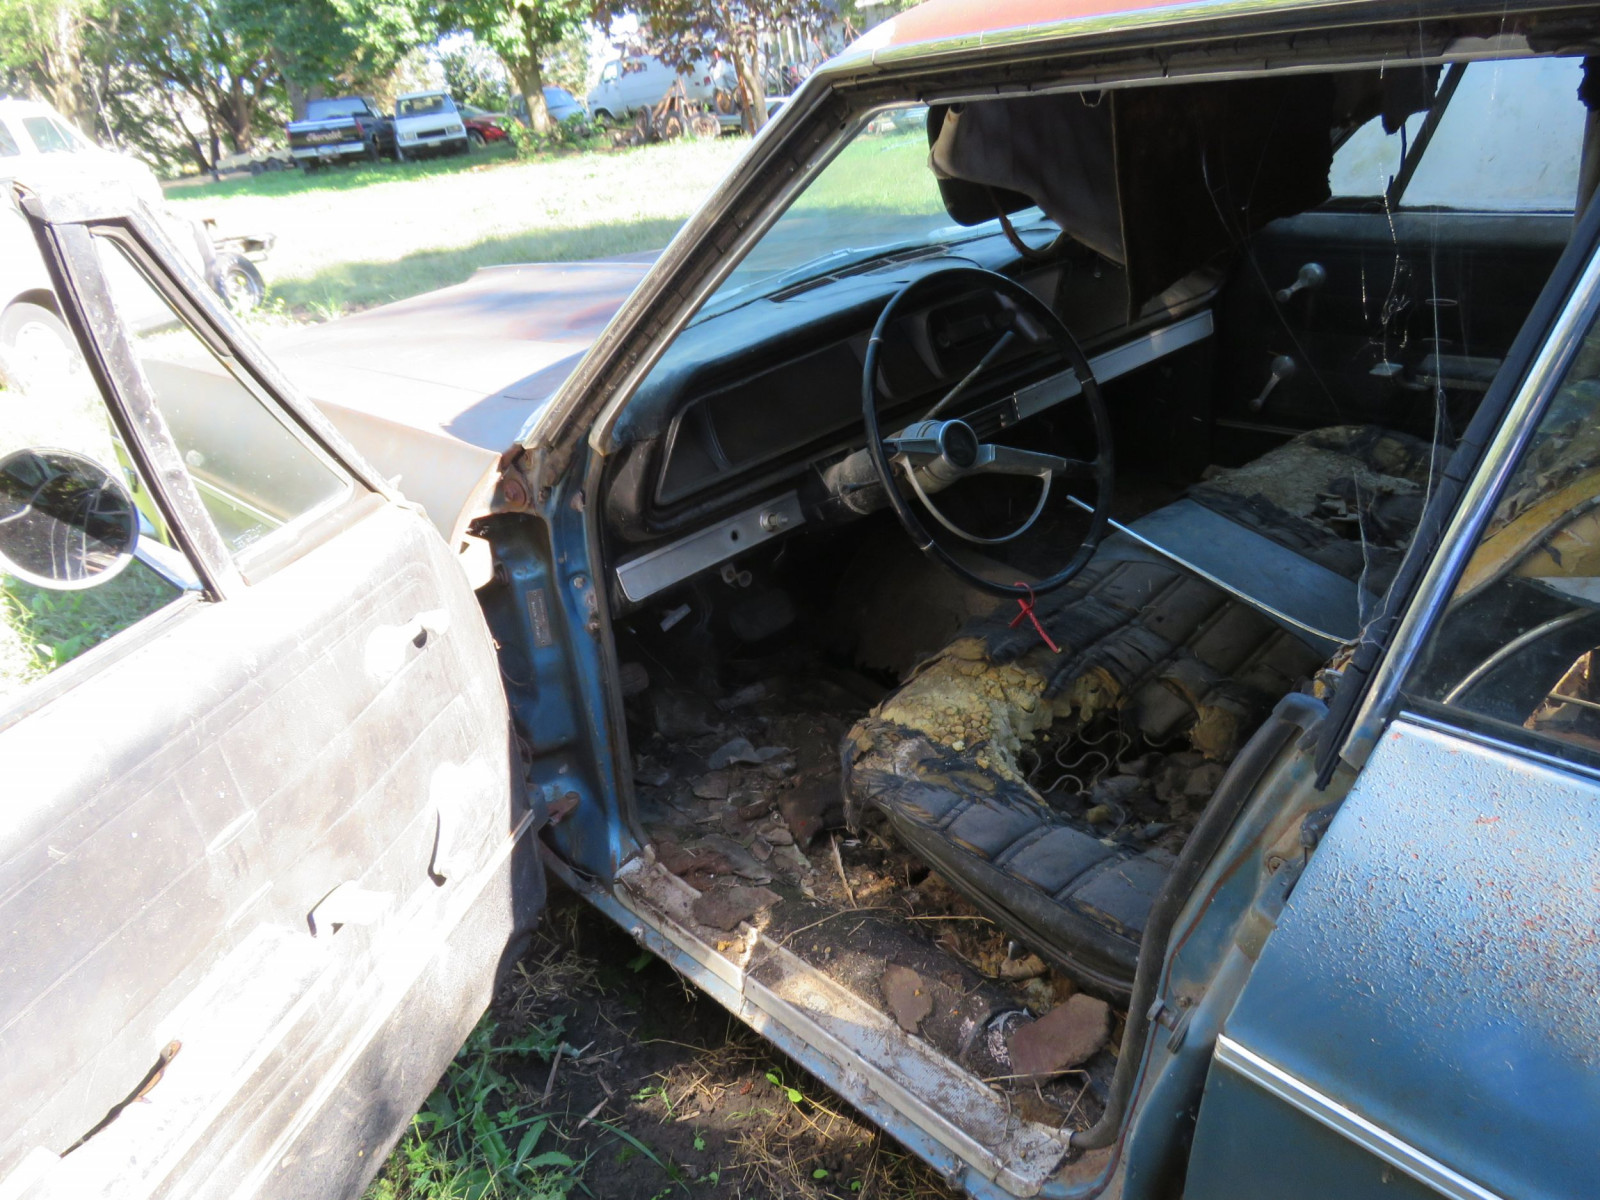 1966 Chevrolet Impala 4dr HT for Project or Parts - Image 5